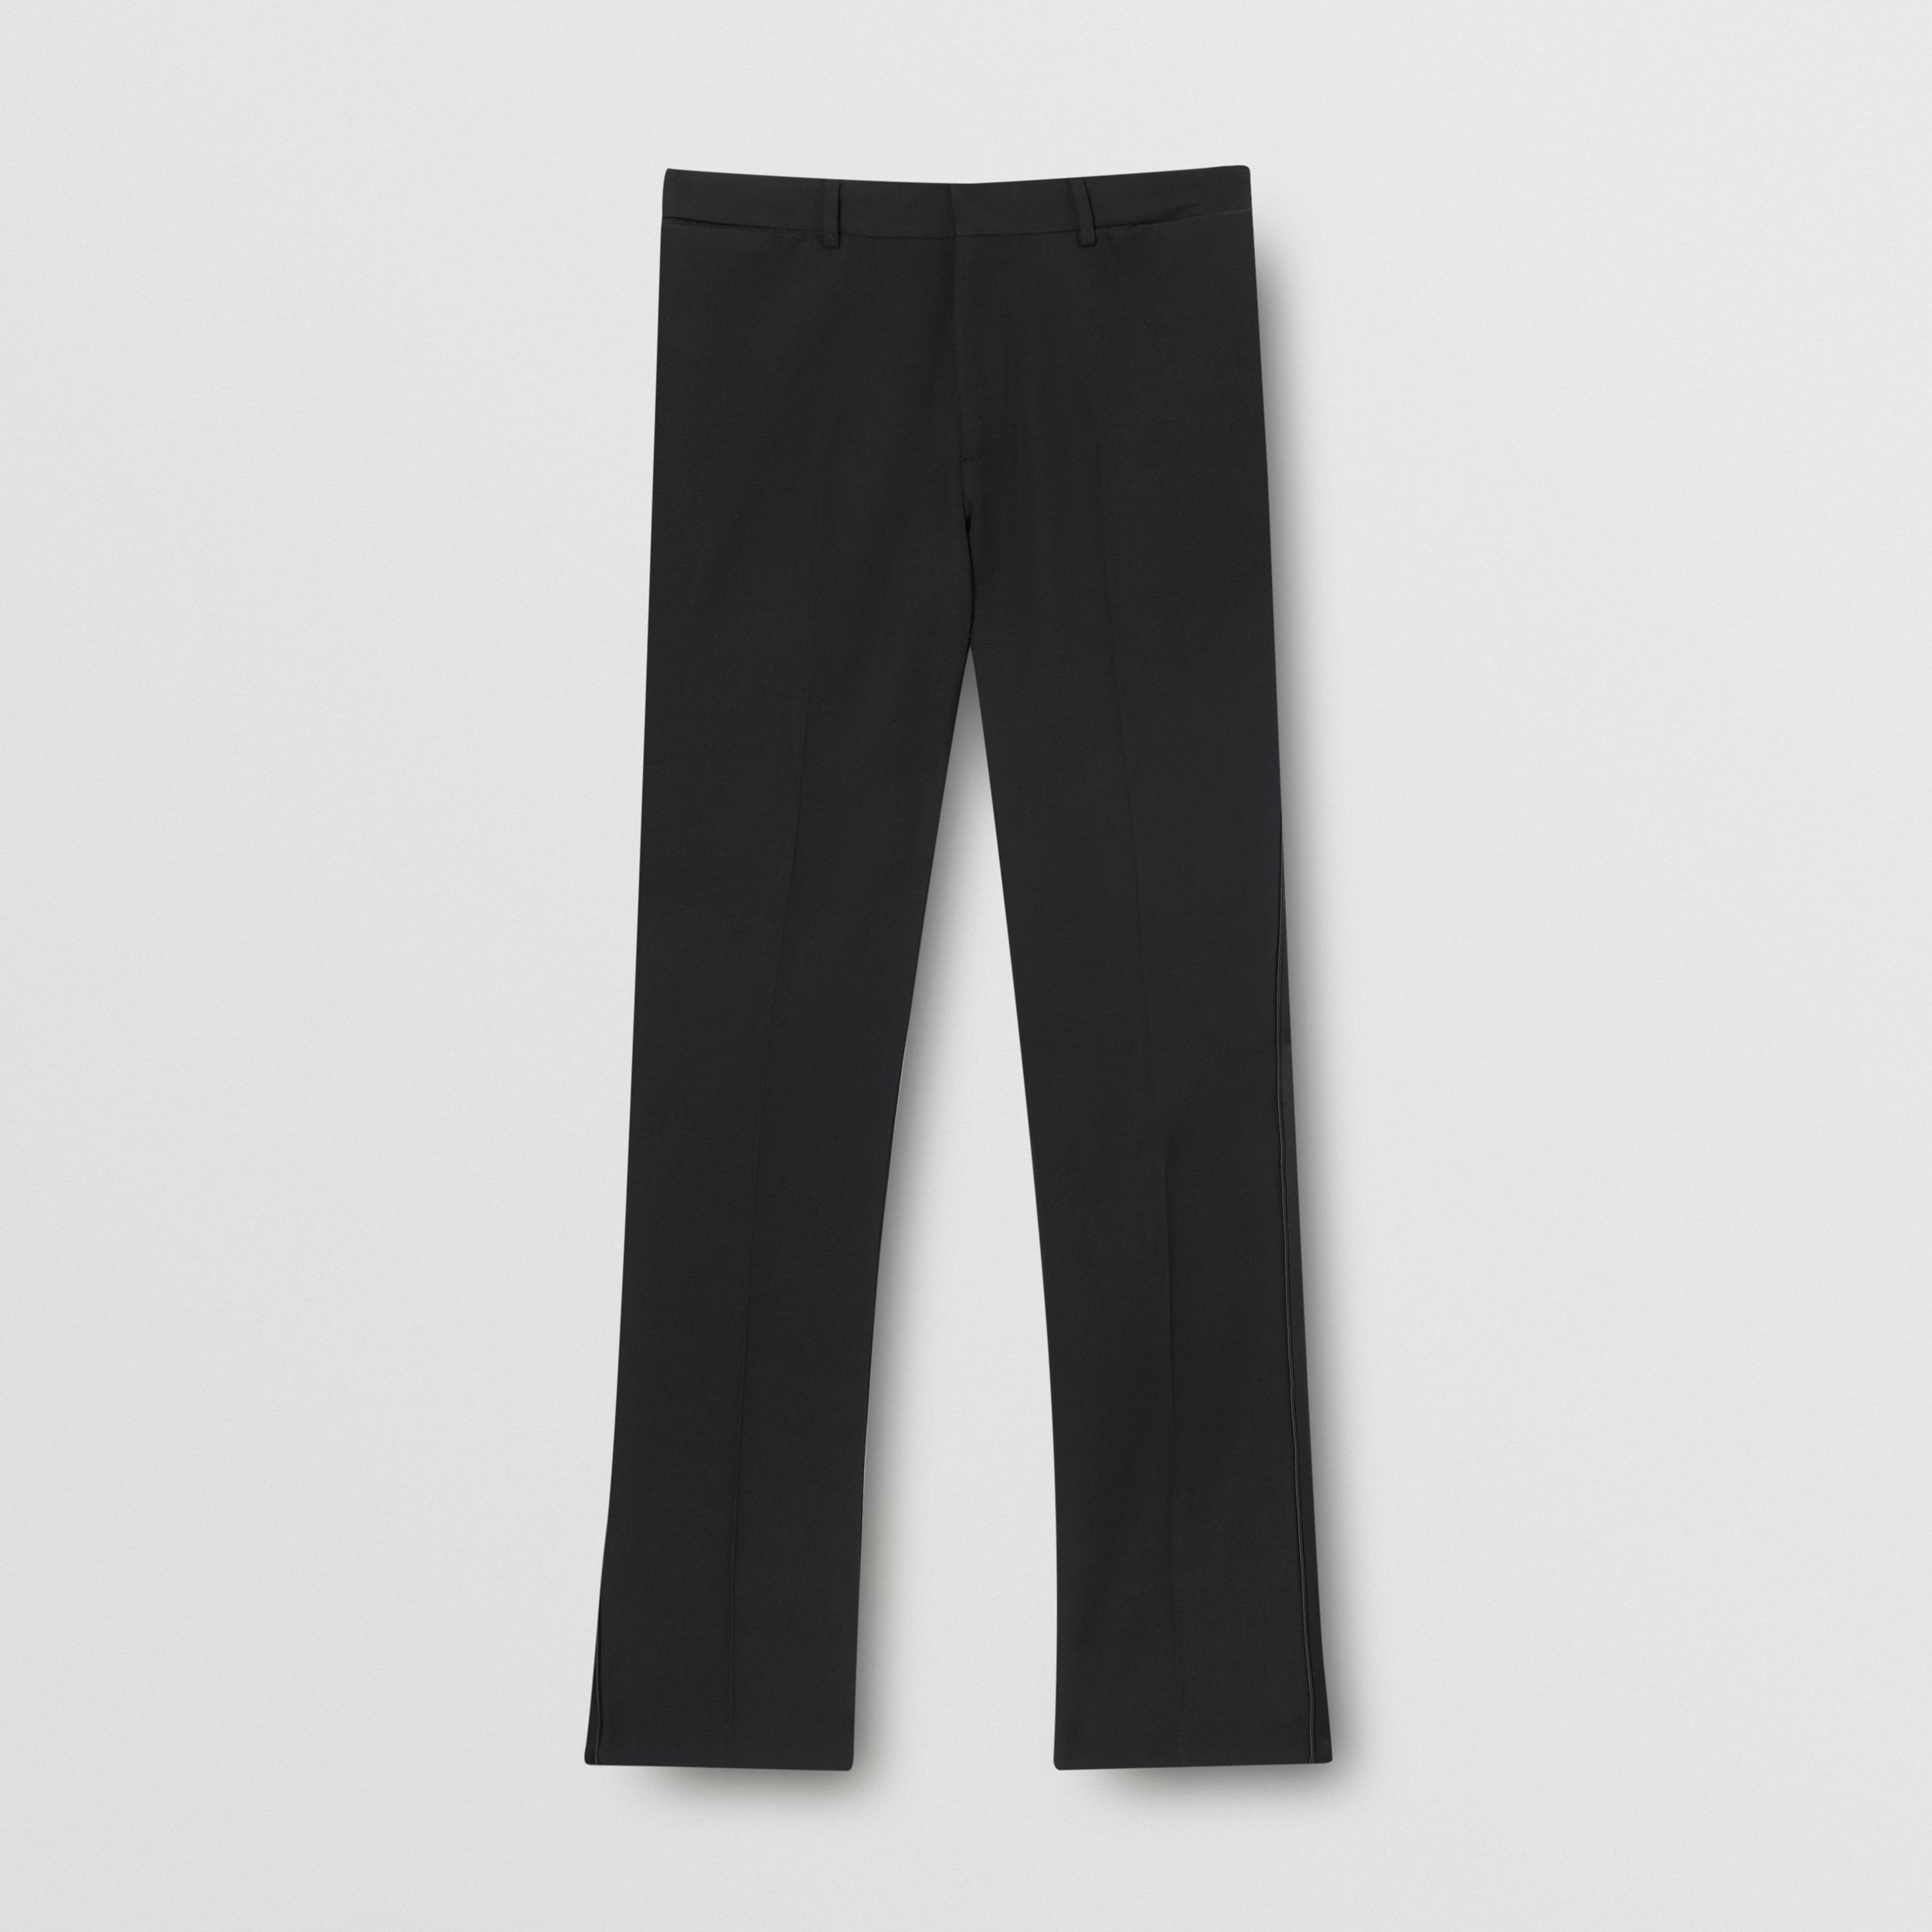 Slim Fit Silk Satin Detail Wool Tailored Trousers in Black | Burberry Canada - 4